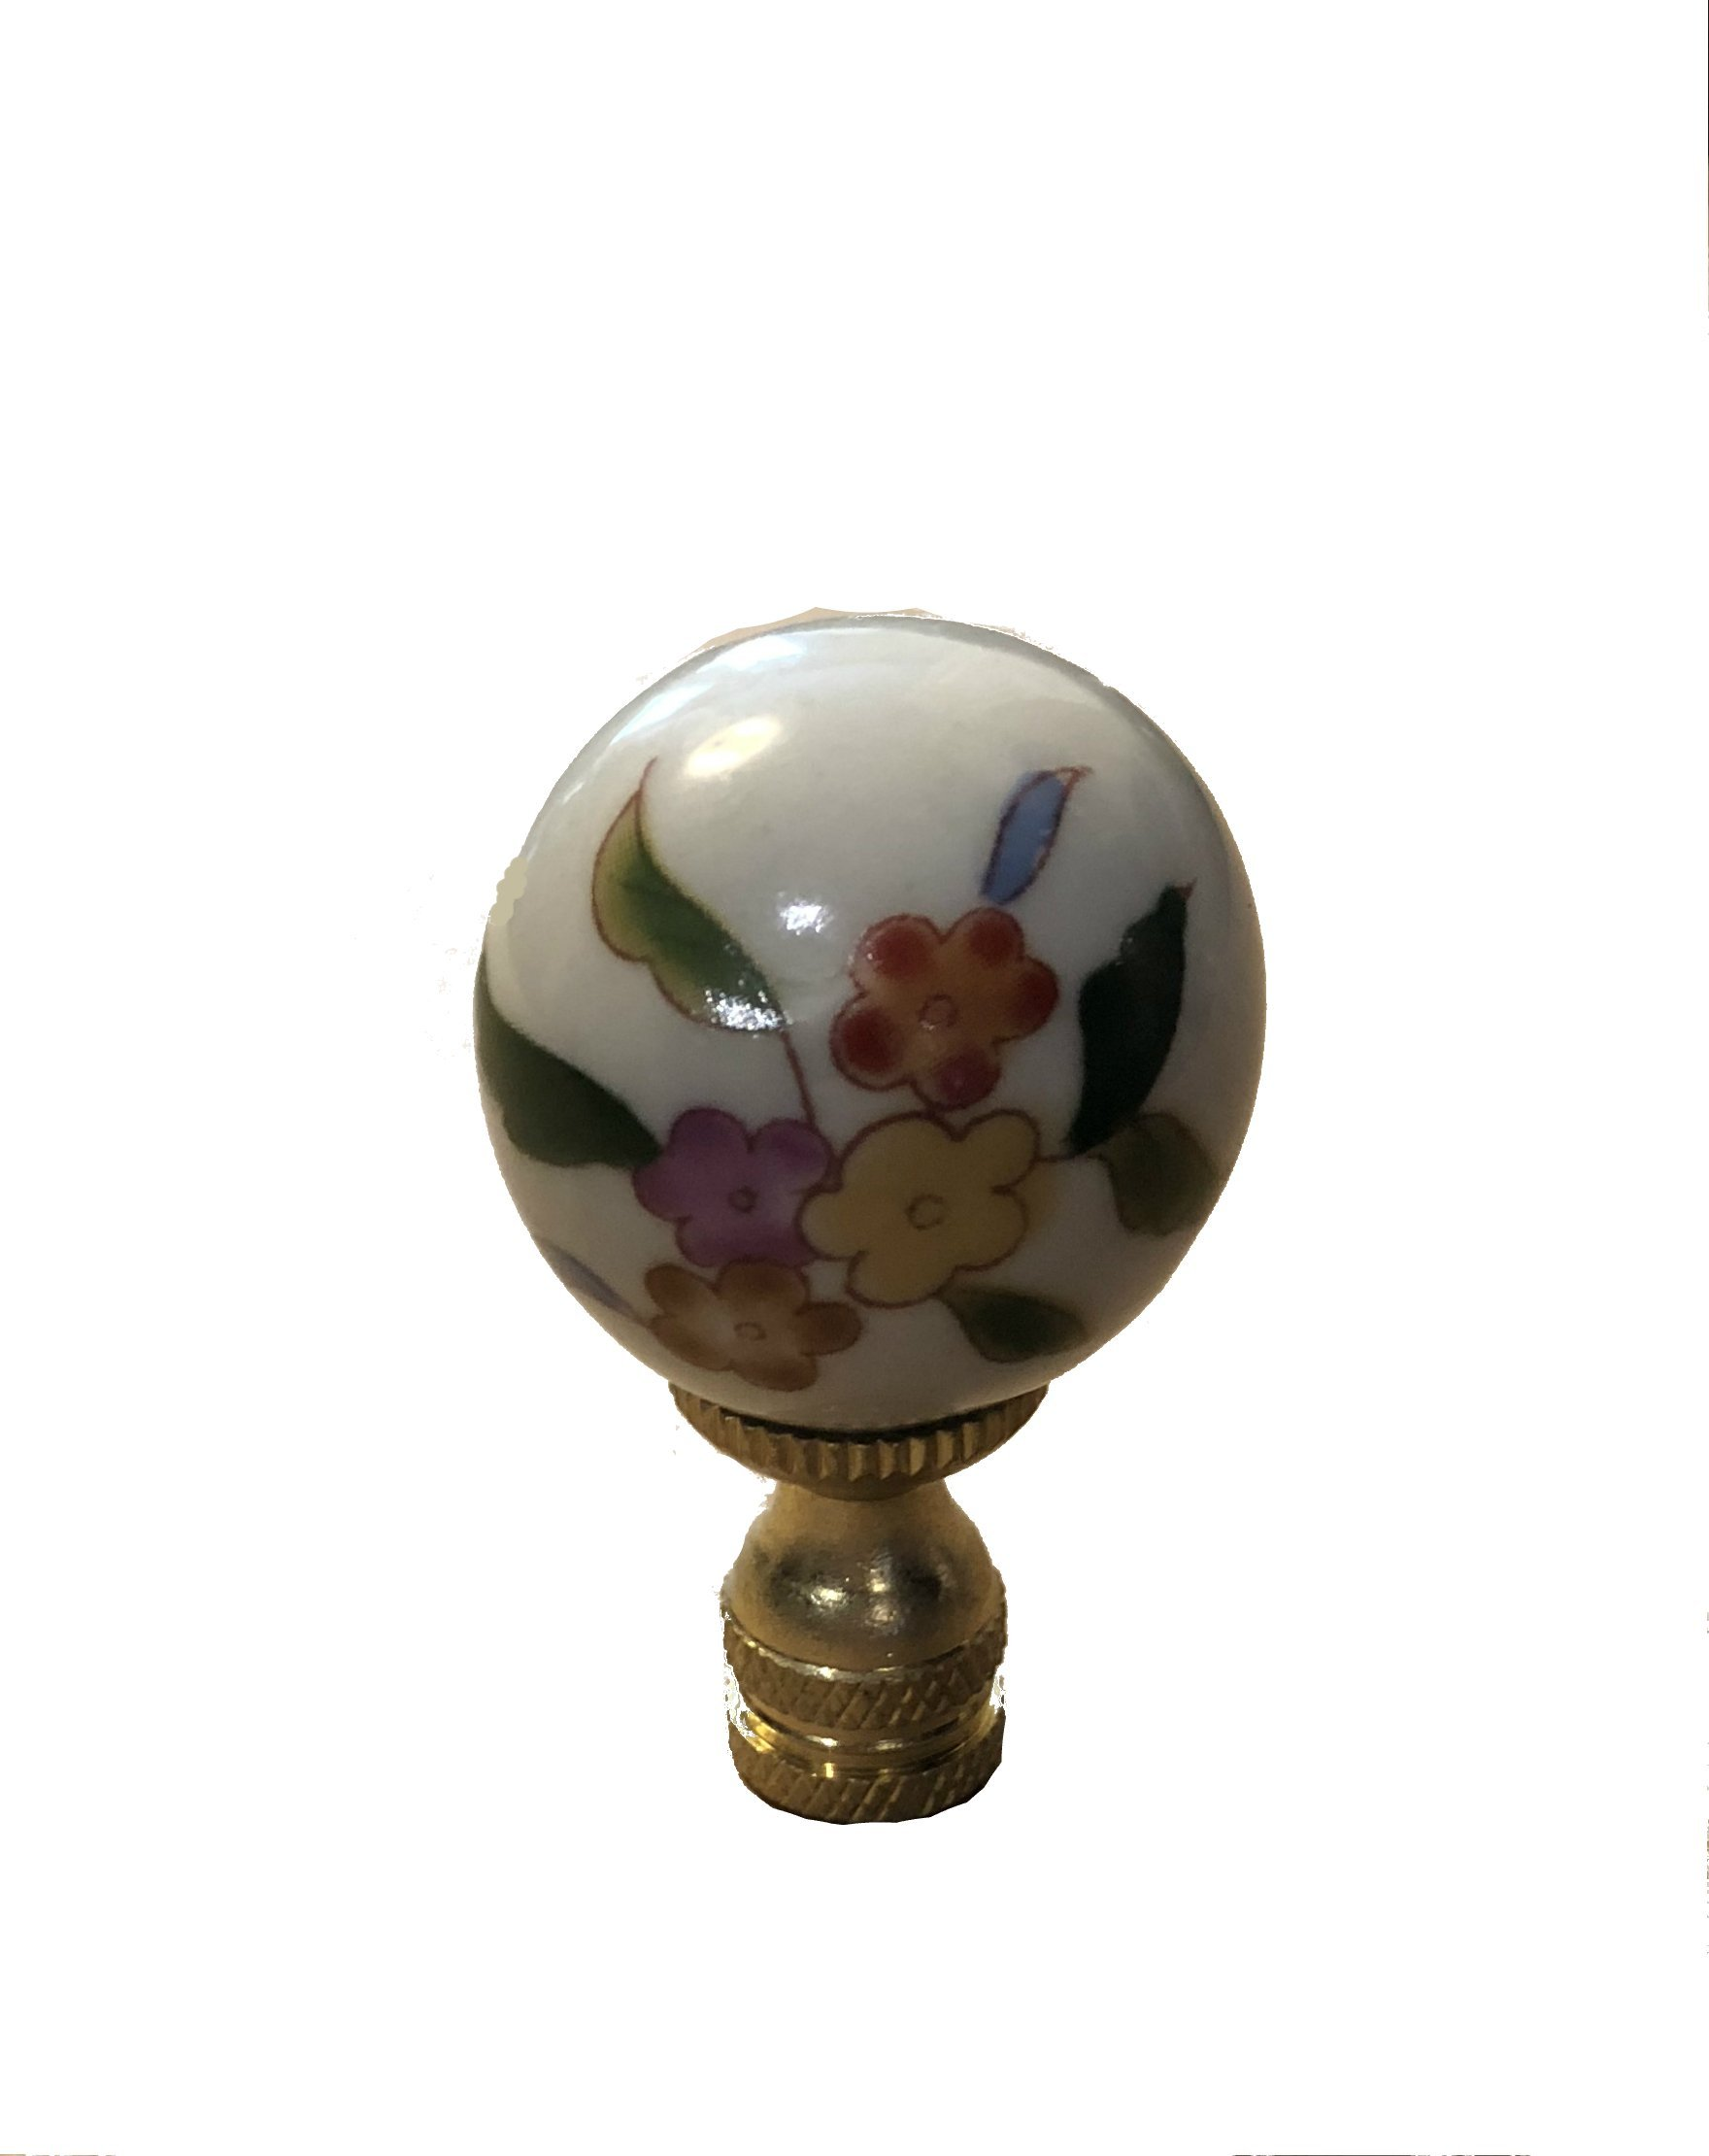 Colorful White Chinoiserie Finial Lamp Shade Topper Porcelain Asian Chinese Pansy Daisy Impatian Floral Leaf Motif Oriental Lamp